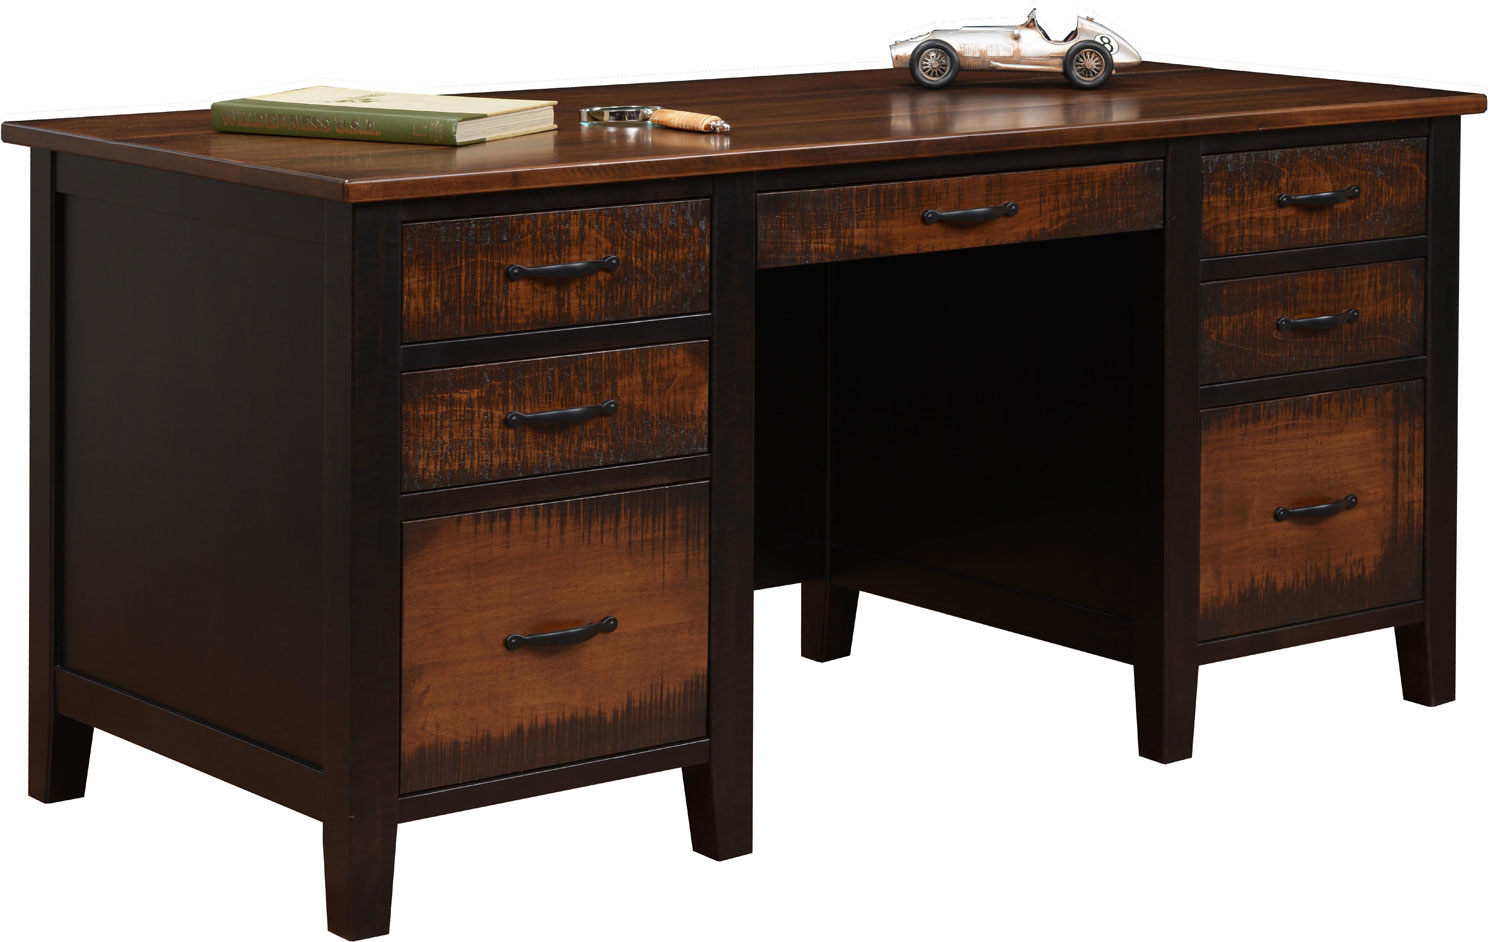 Manhattan Series Executive Desk Shown In Brown Maple With Fc 11047 Ebony Stain And Chocolate Tavern